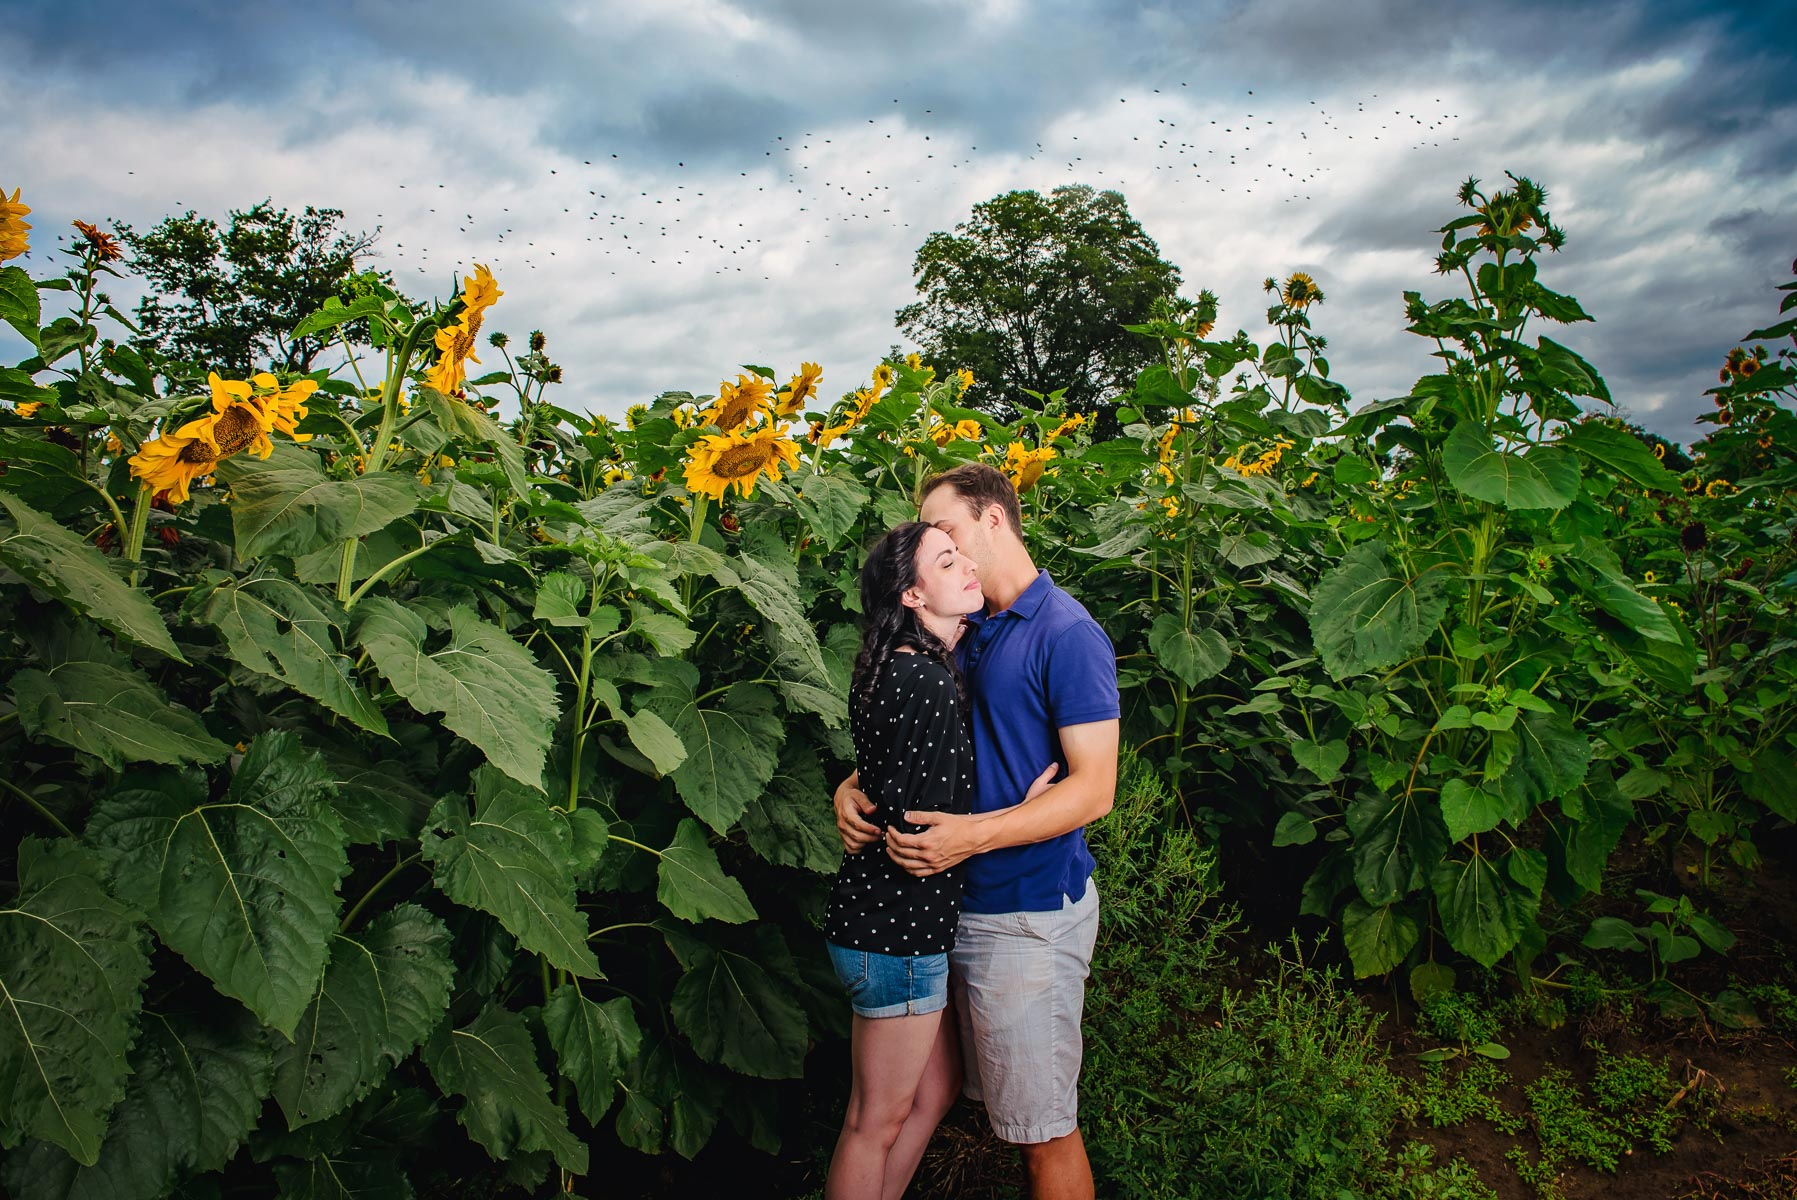 Sunflower farm engagement shoot _ Johnson's Locust Hall Farm _ Jobstown NJ-19.jpg